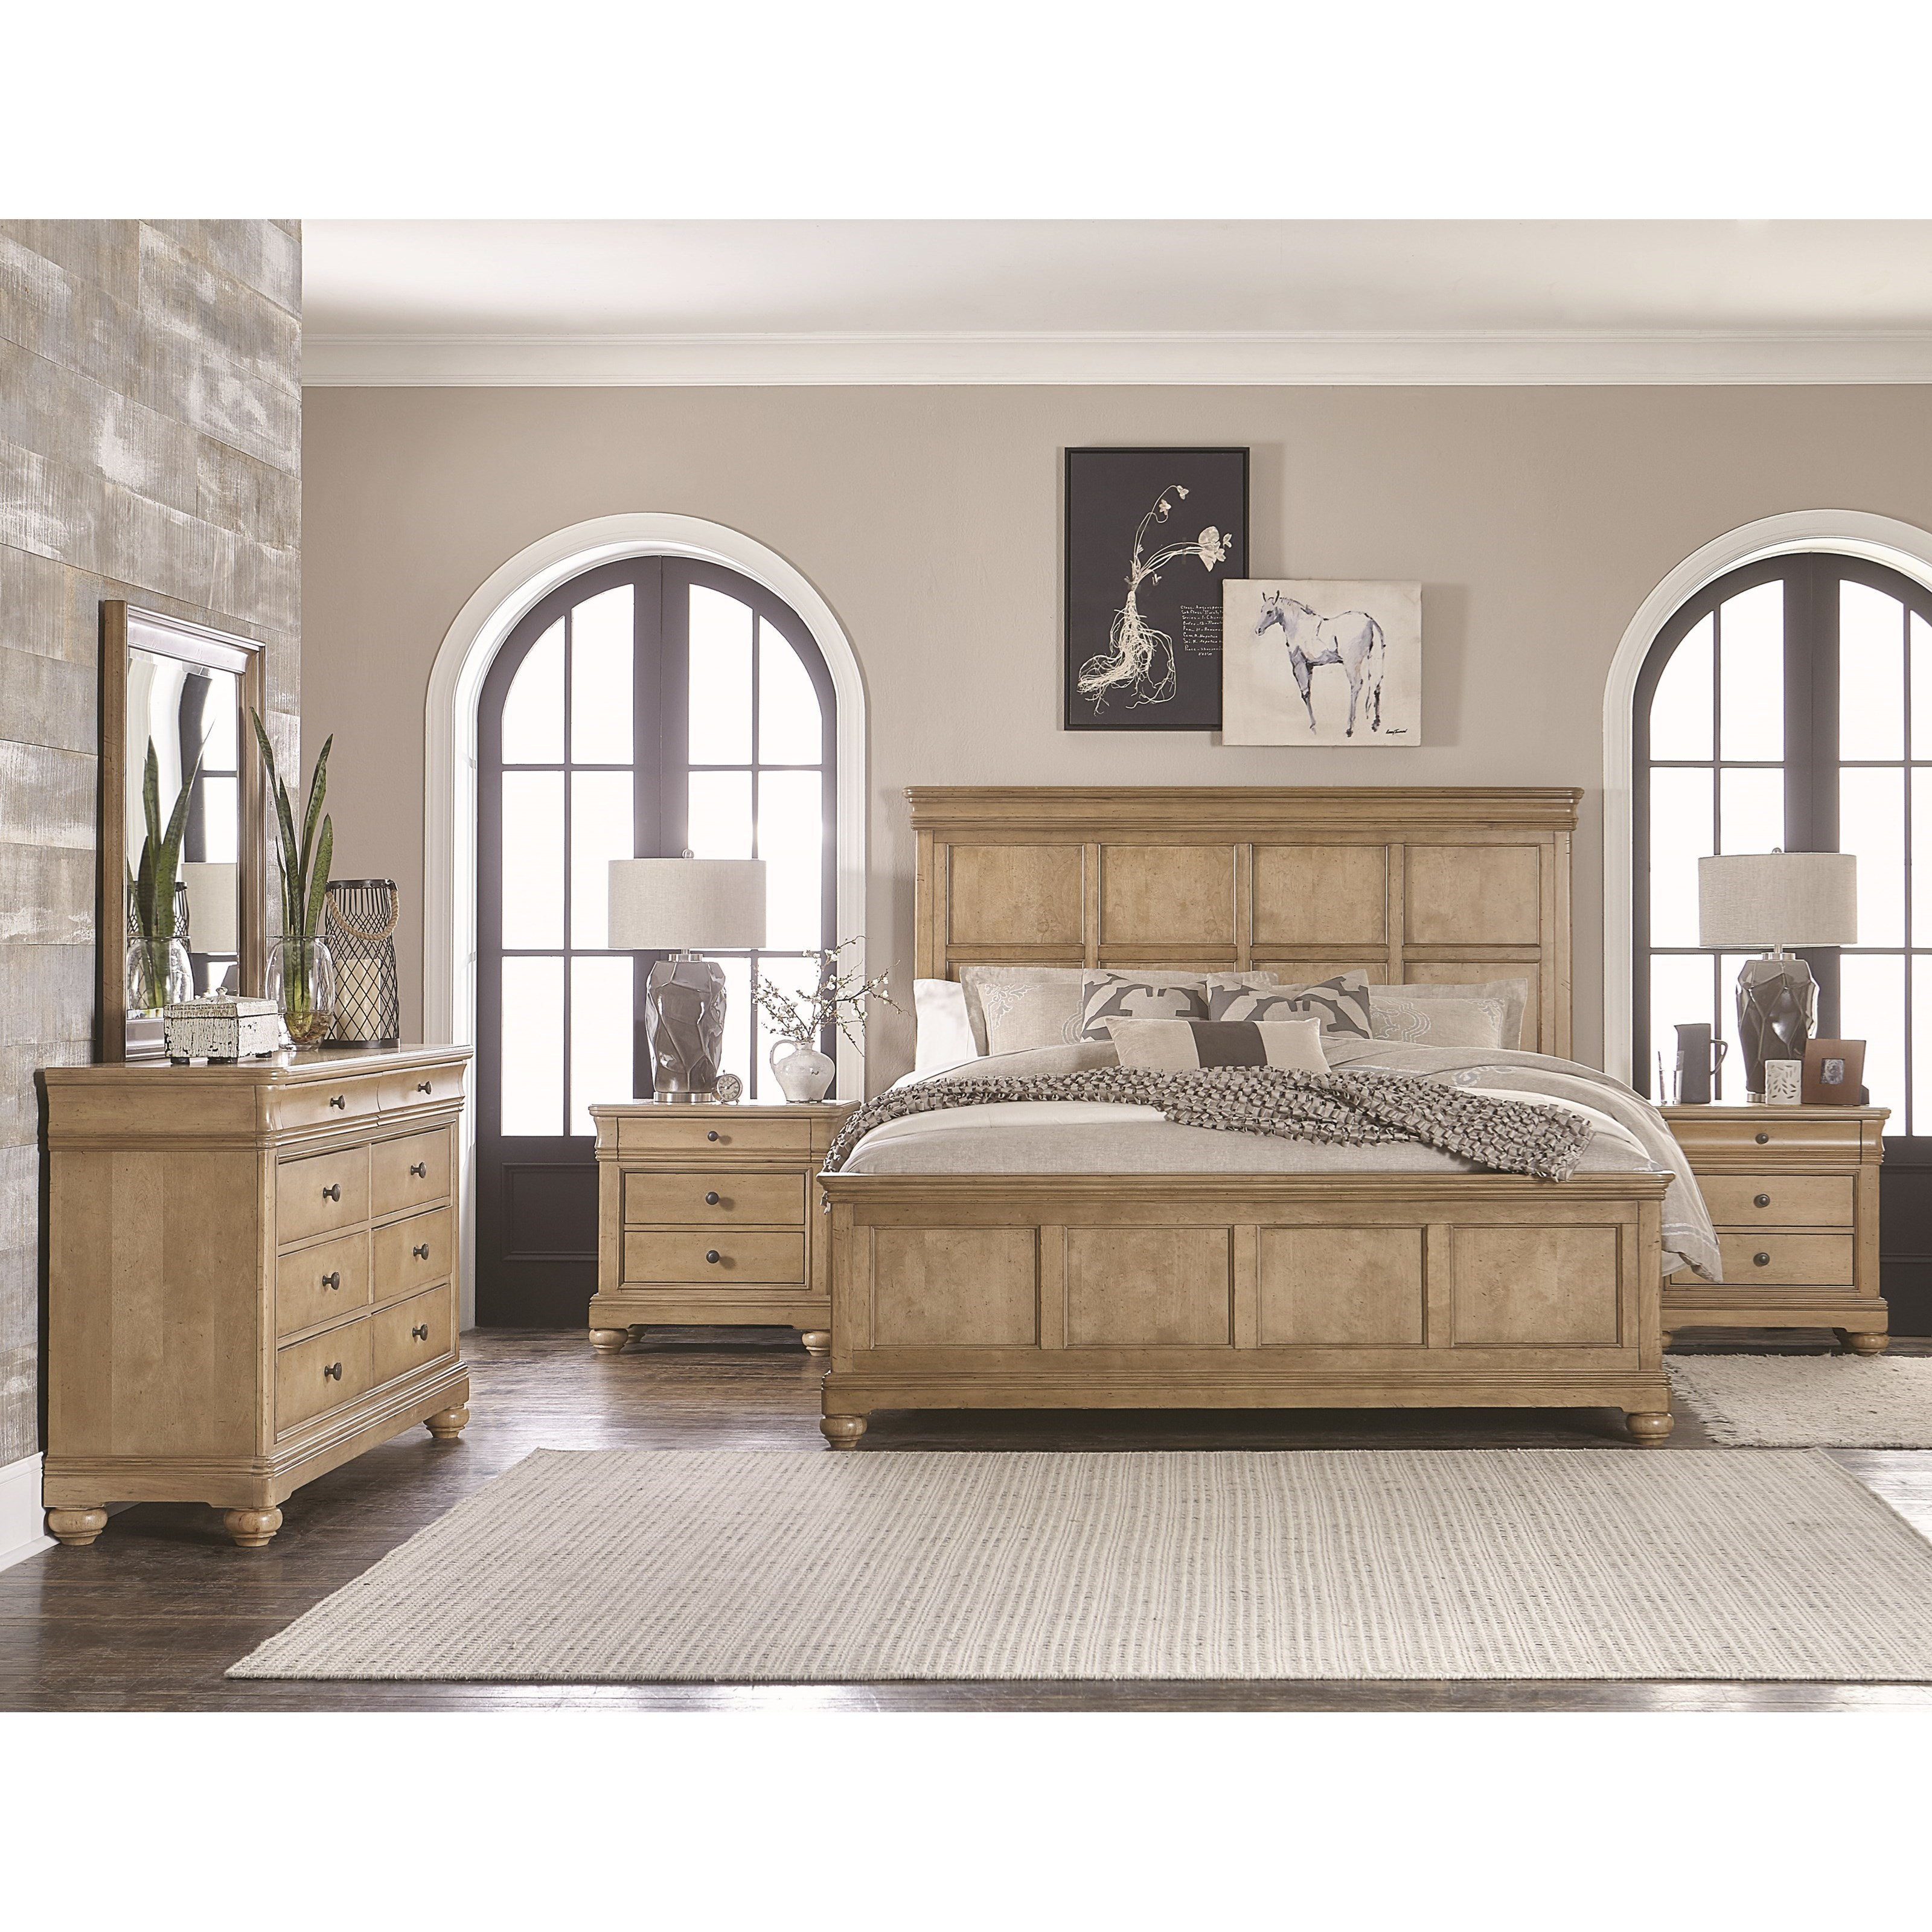 Legacy Classic Ashby Woods King Bedroom Group - Item Number: 7060 K Bedroom Group